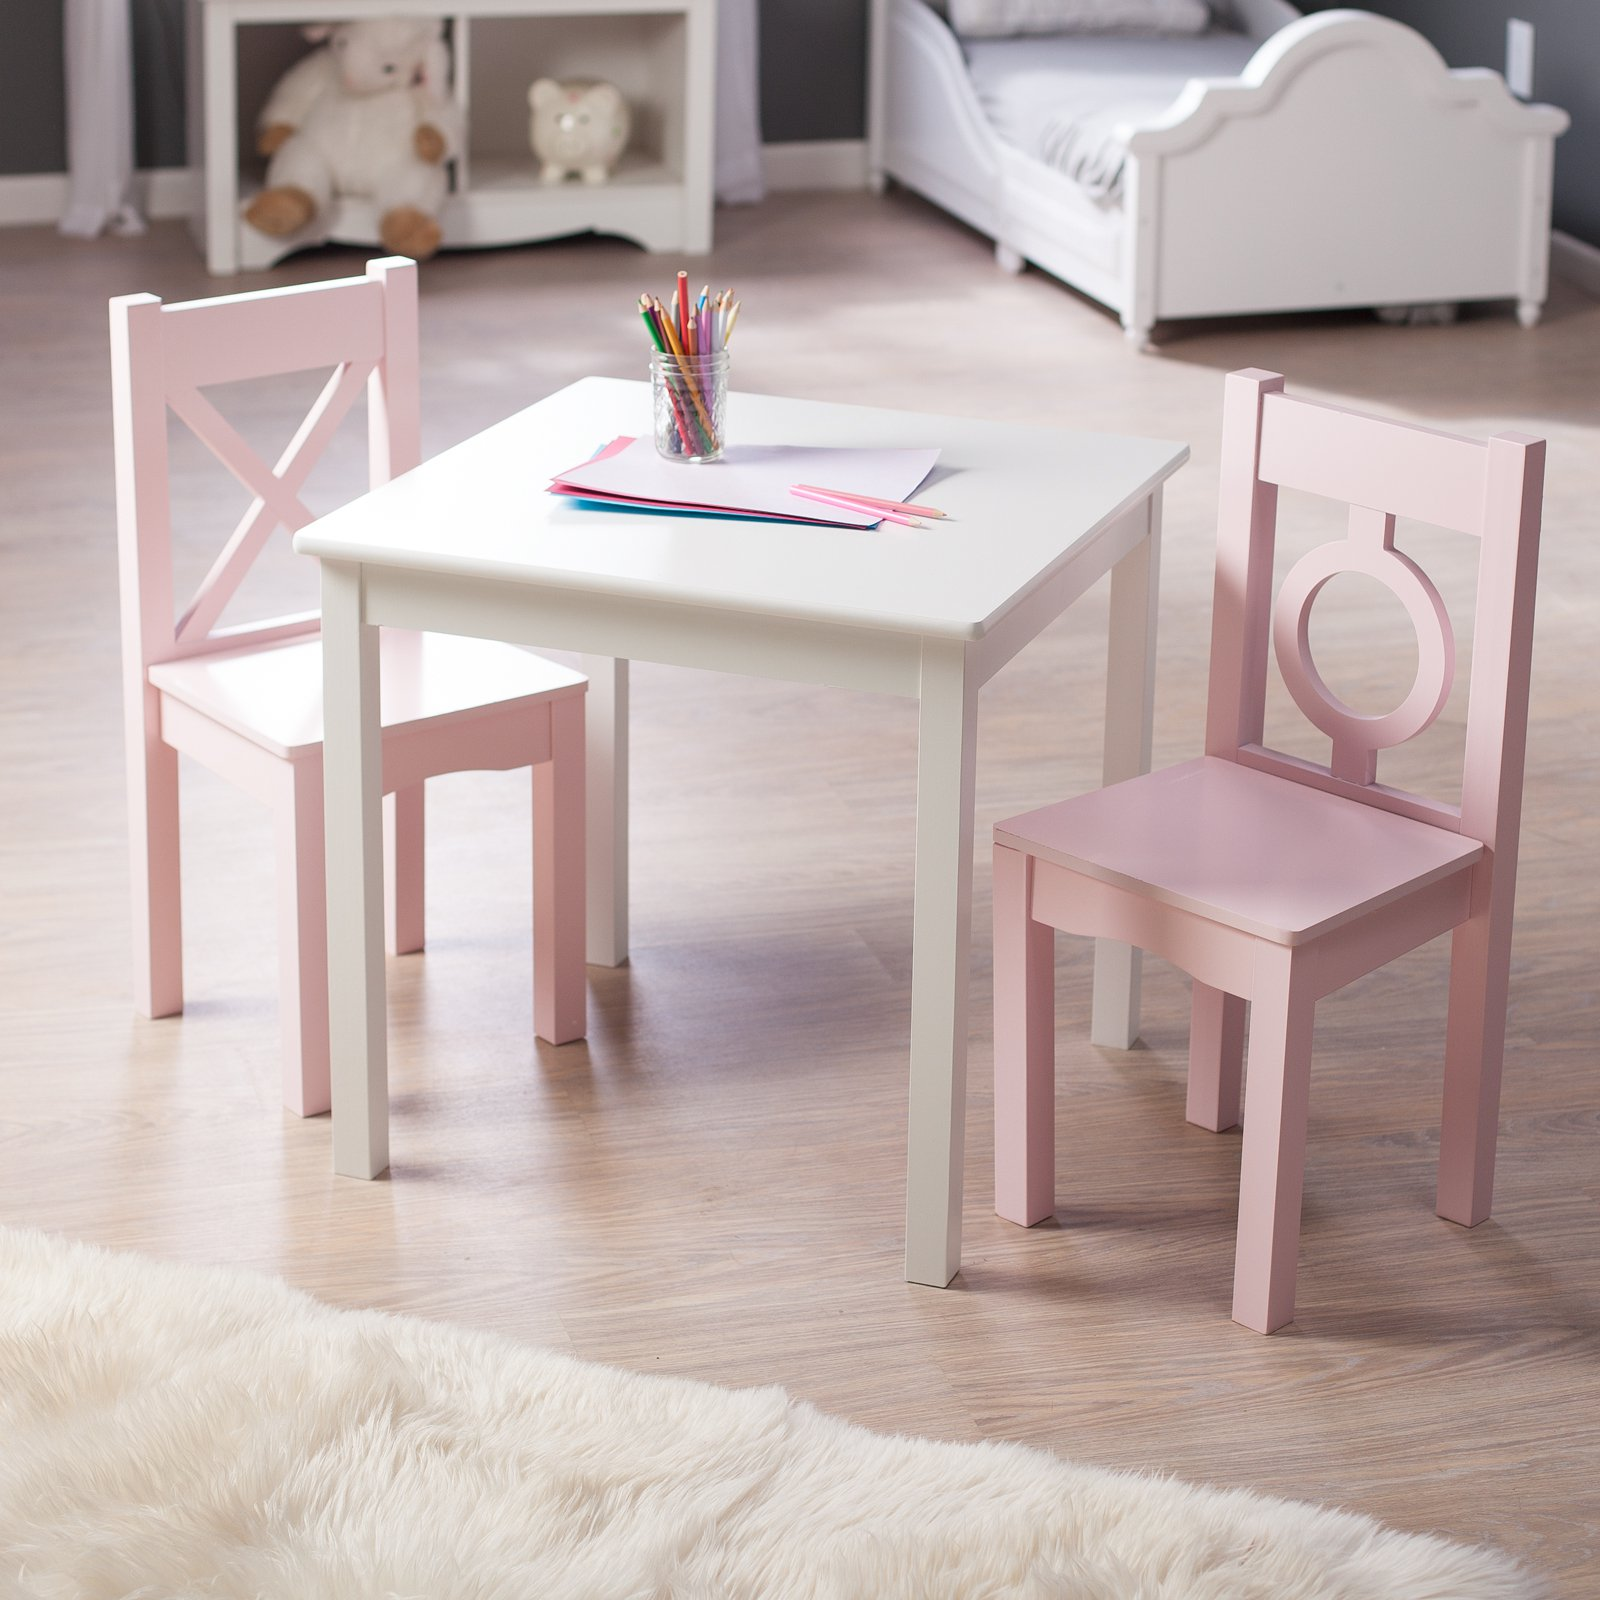 Lipper Hugs and Kisses Table and 2 Chair Set White & Pink